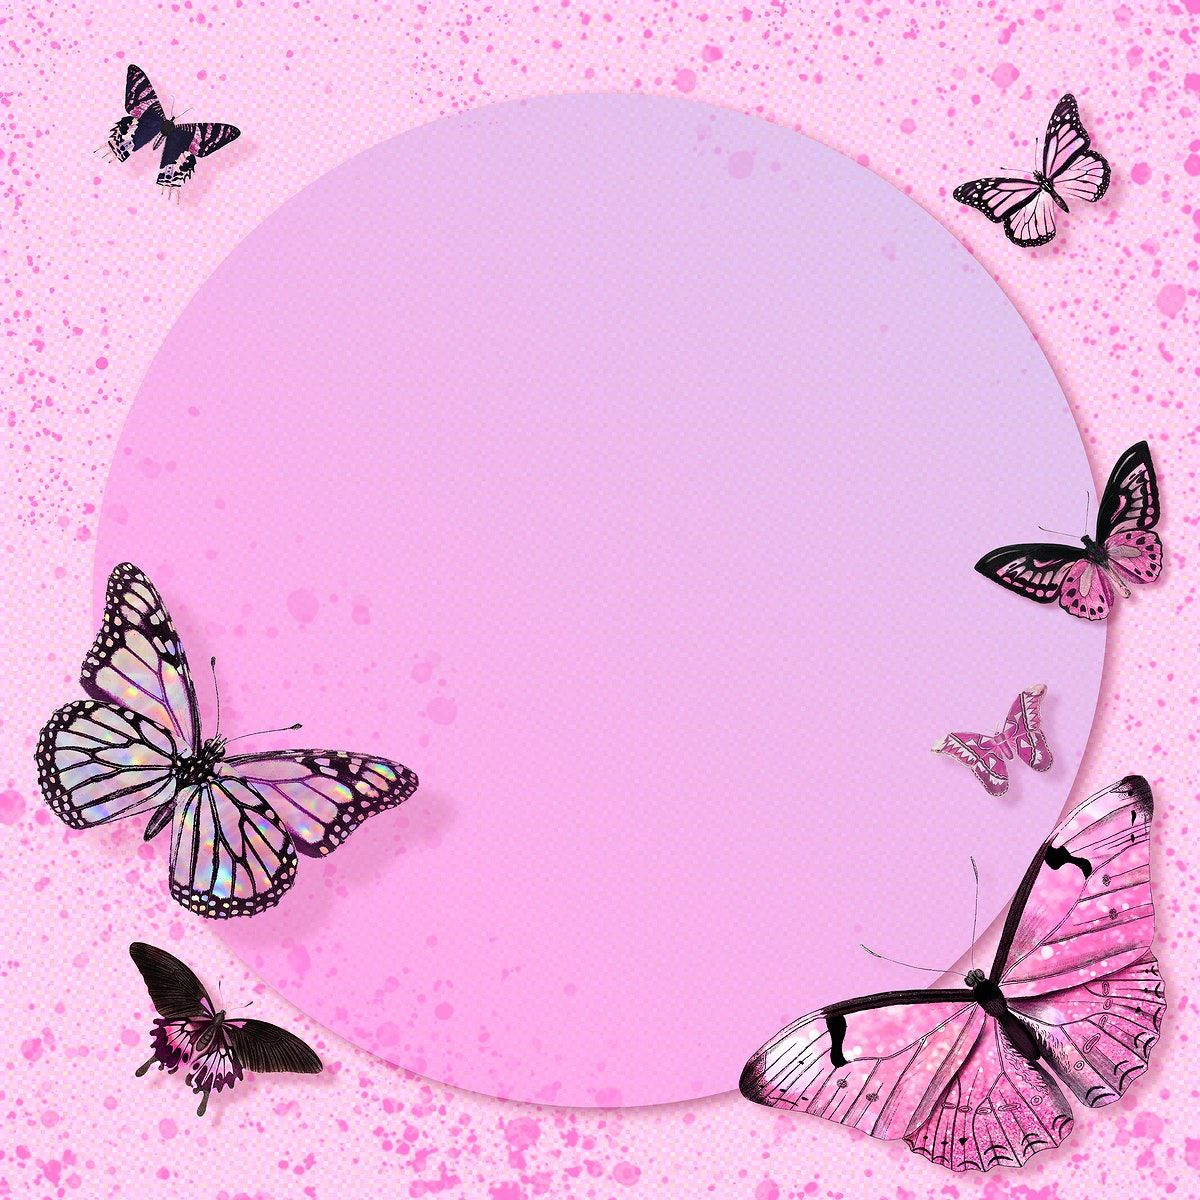 Download Premium Illustration Of Circle Pink Butterfly Frame Design Butterfly Wallpaper Backgrounds Butterfly Frame Pink Butterfly